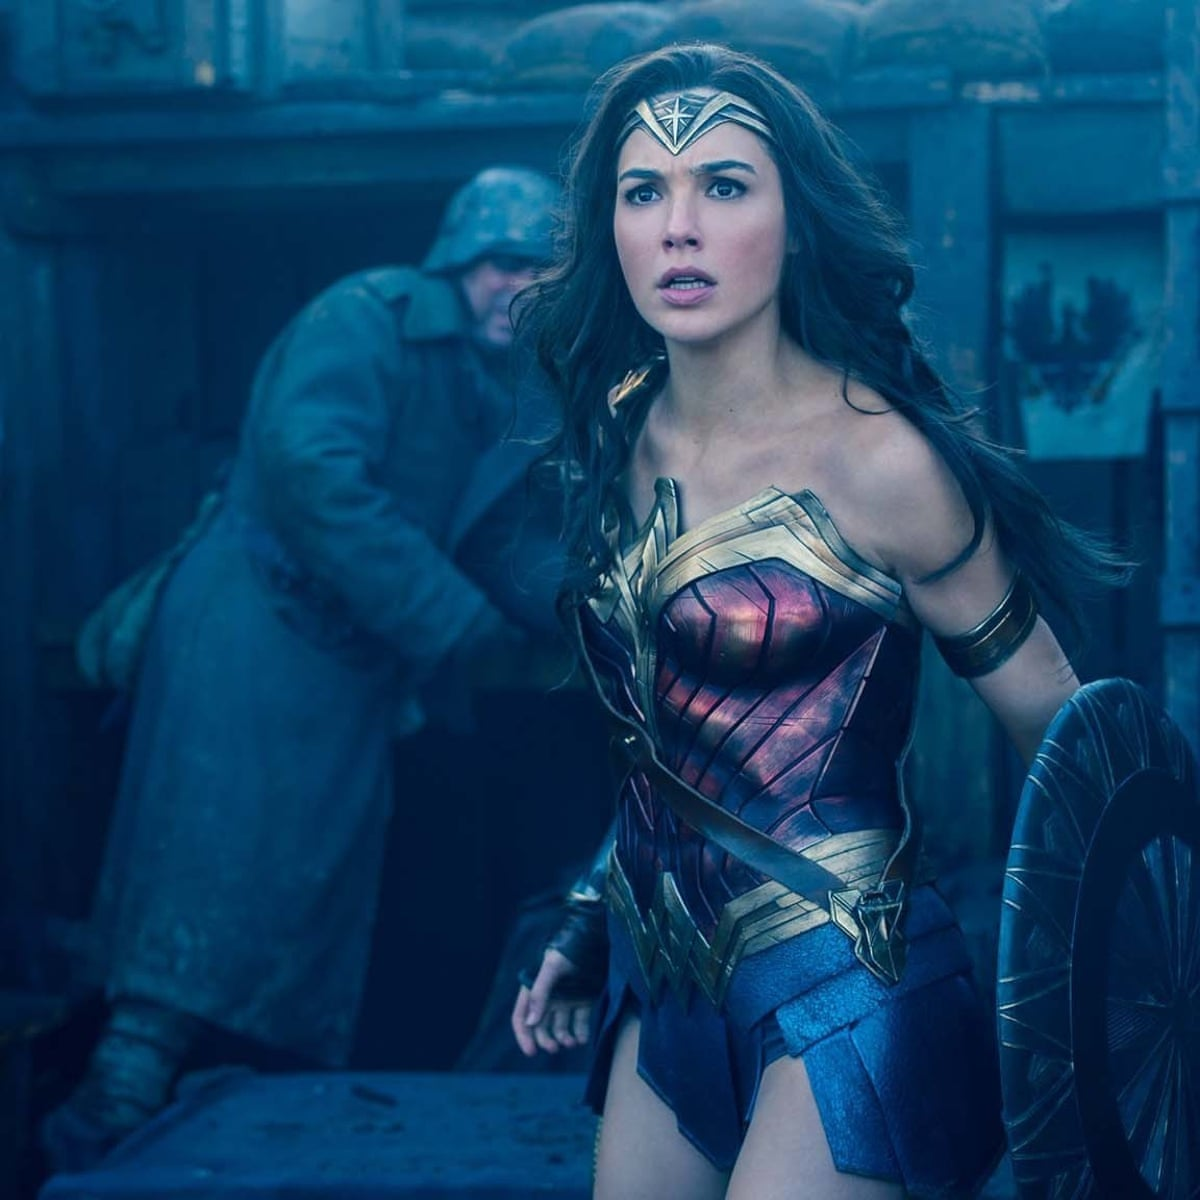 Wonder Woman banned in Lebanon due to Israeli lead, Gal Gadot | Film | The Guardian